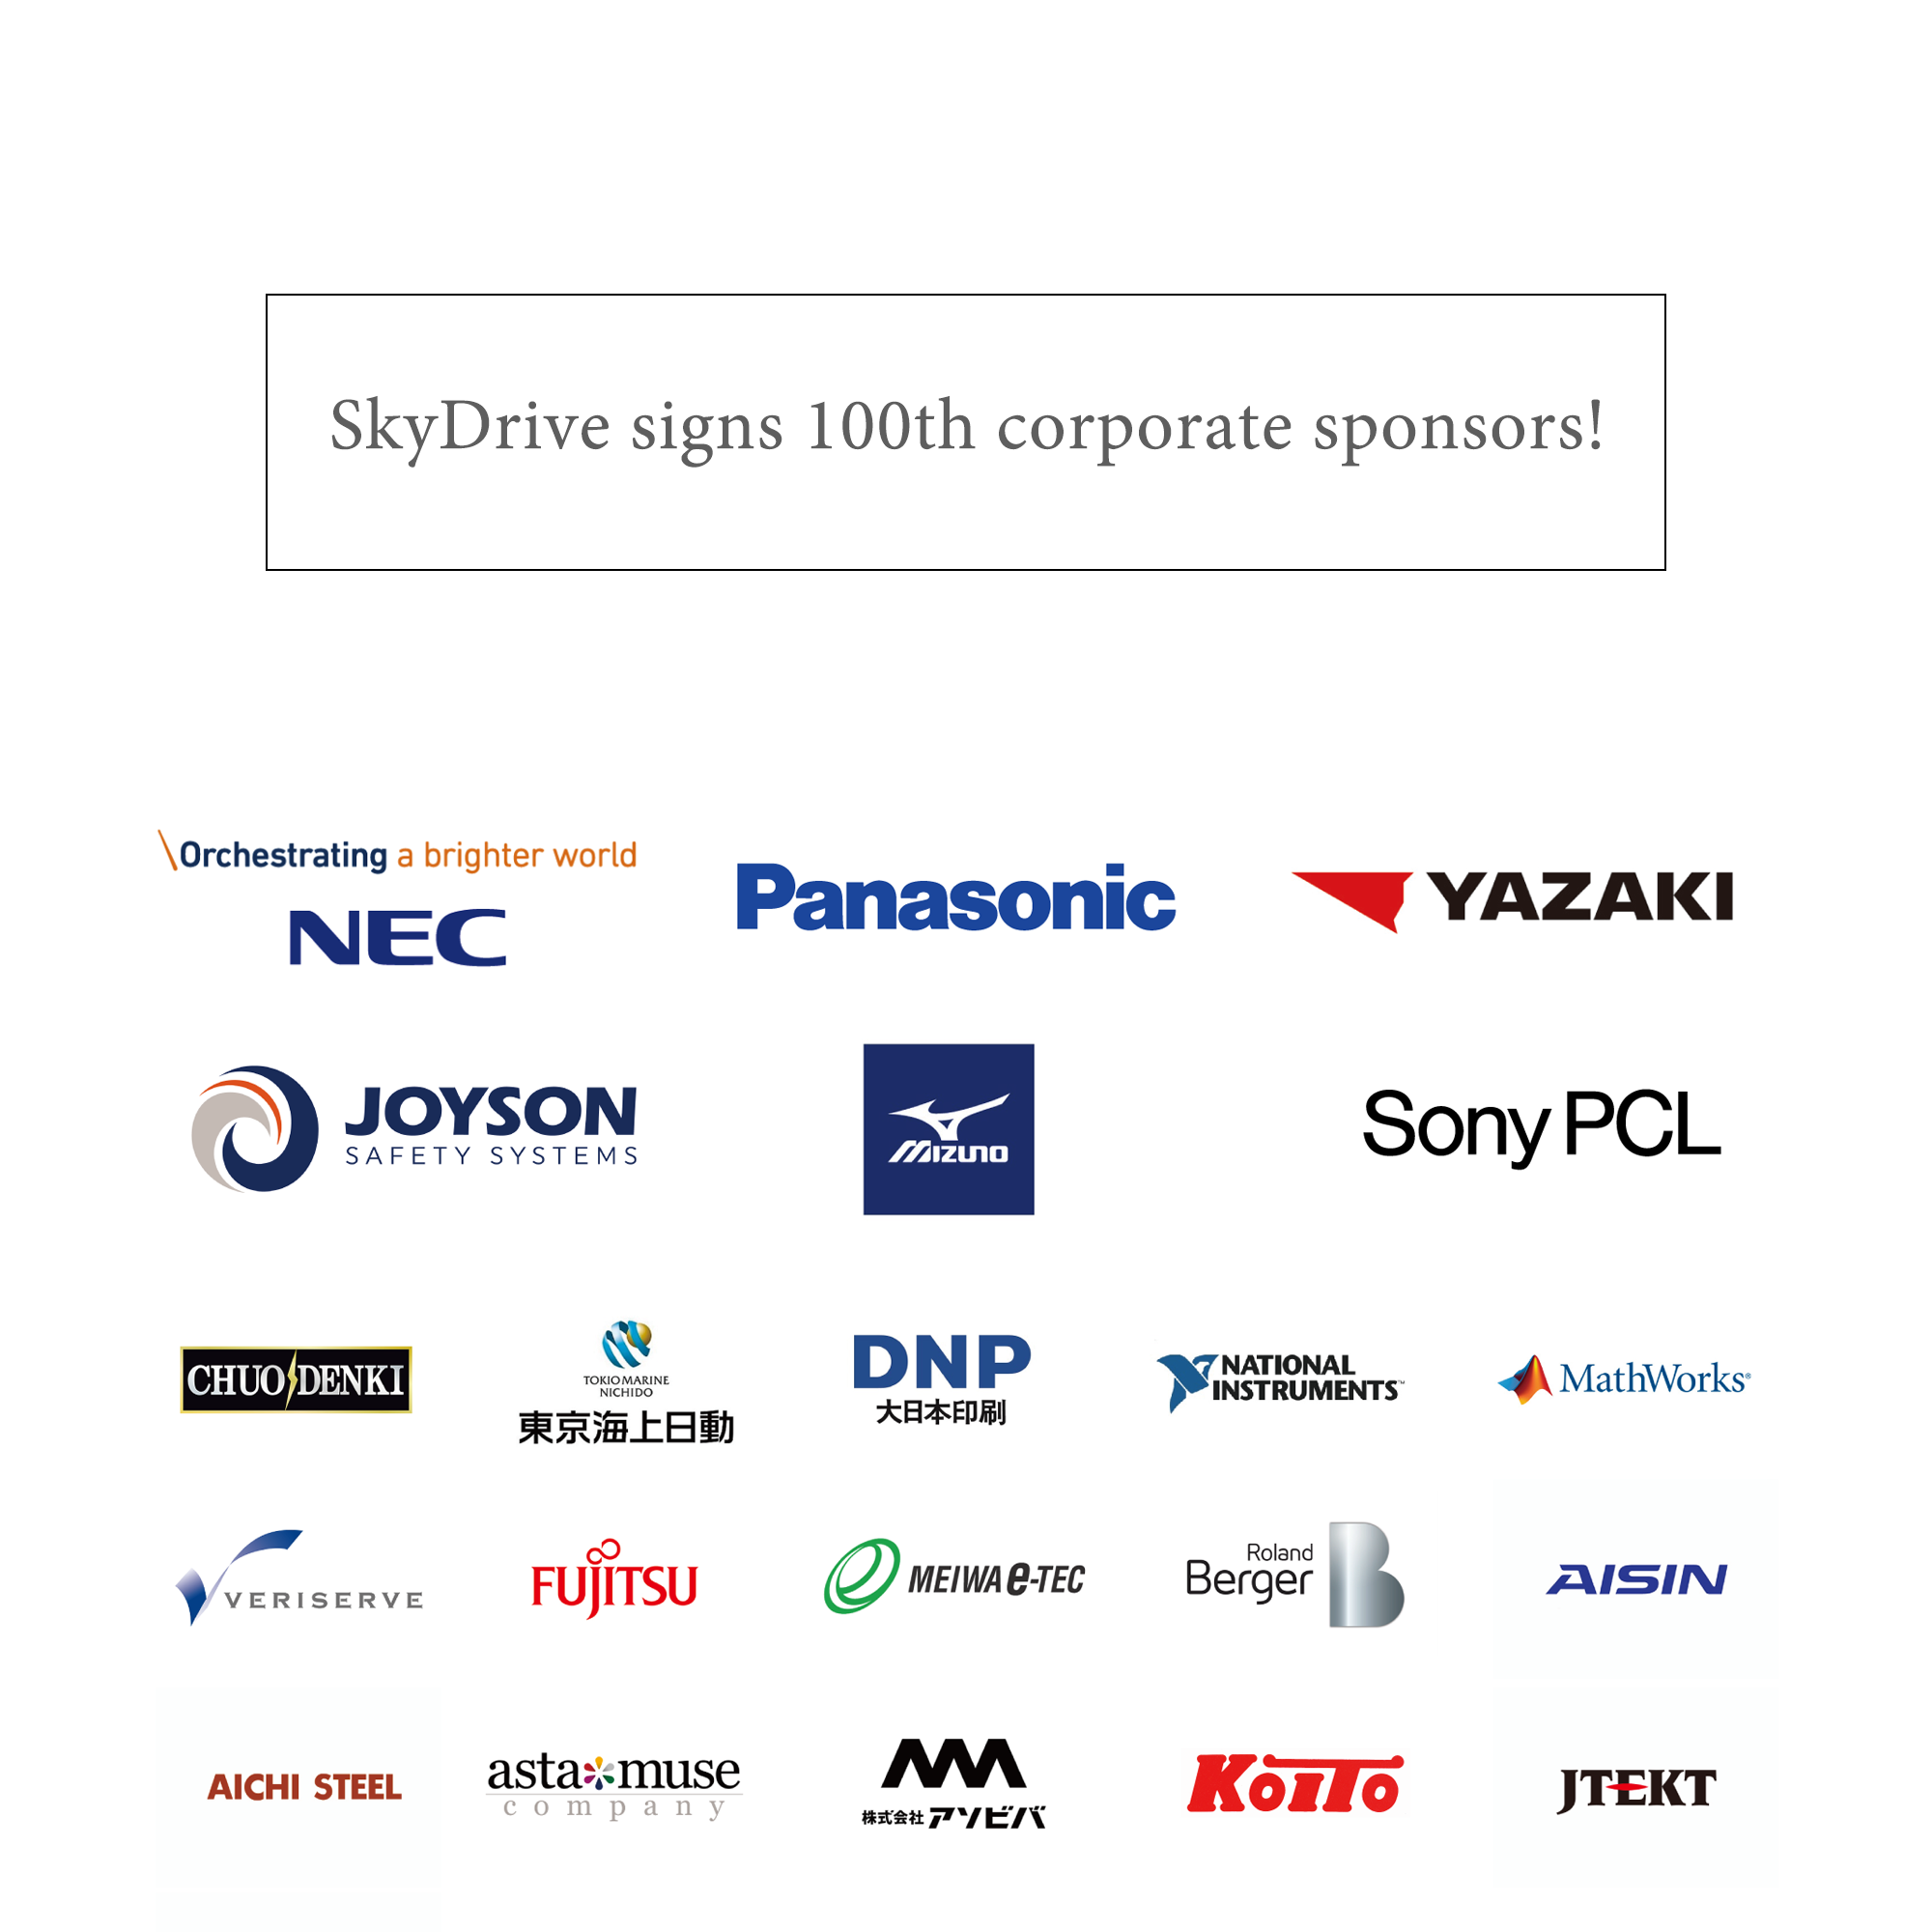 SkyDrive signs 100th corporate sponsors!